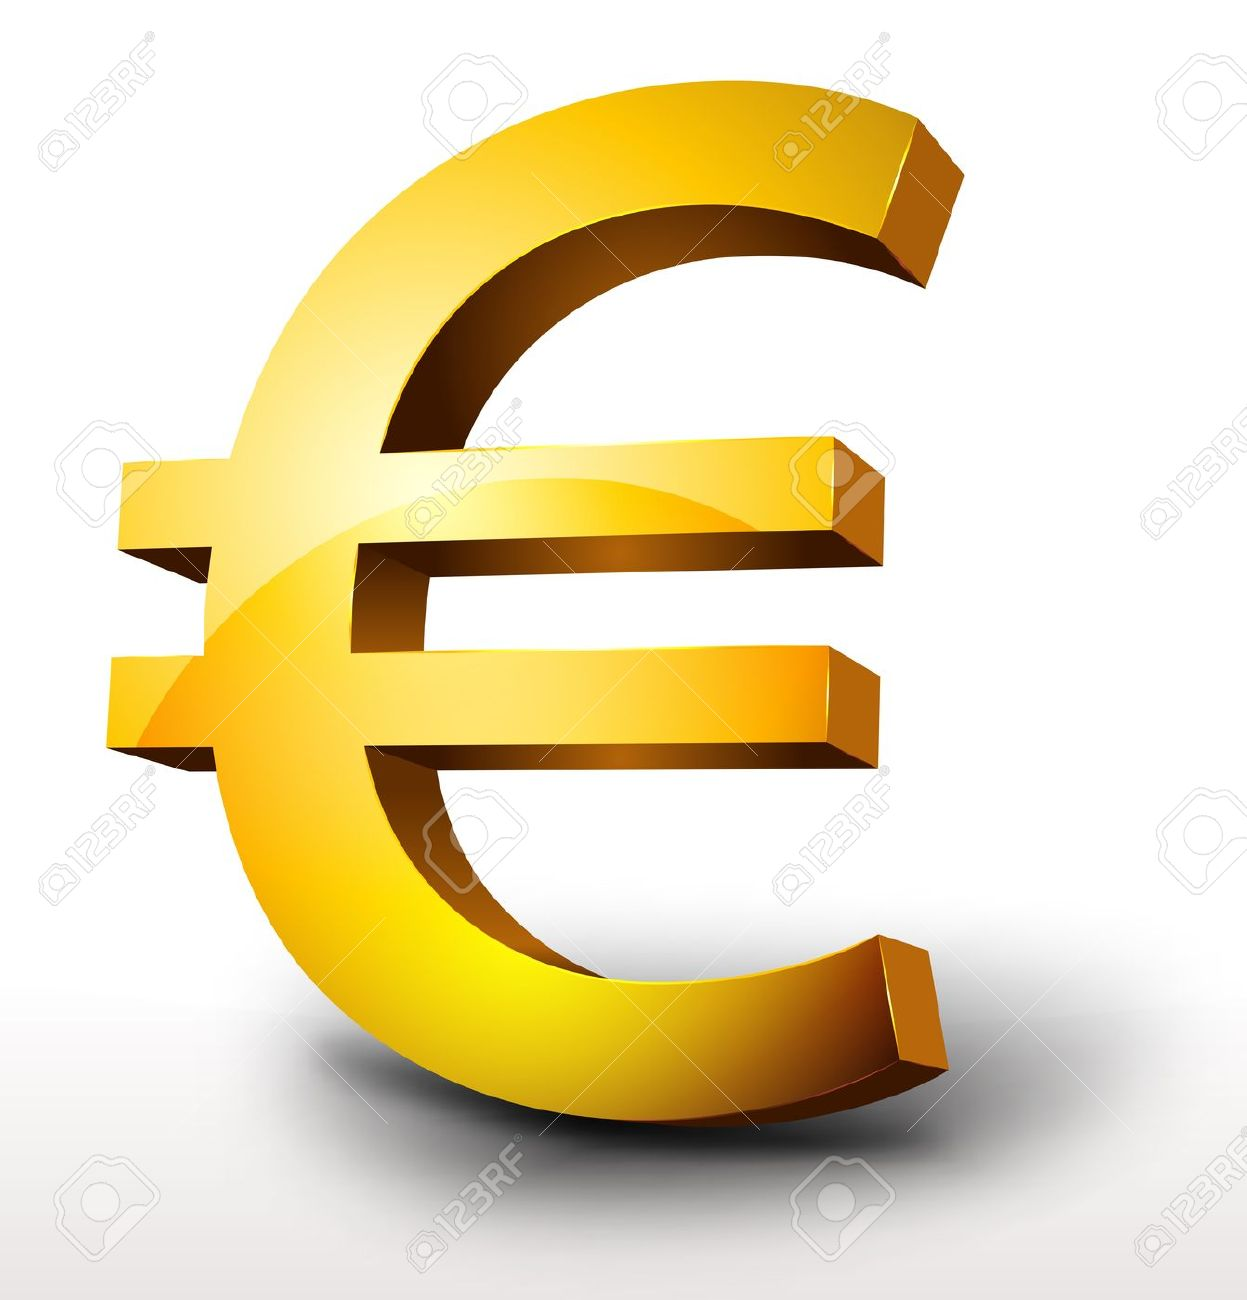 15542105-illustration-of-a-glossy-3d-golden-euro-currency-stock-vector-euro-money-symbol